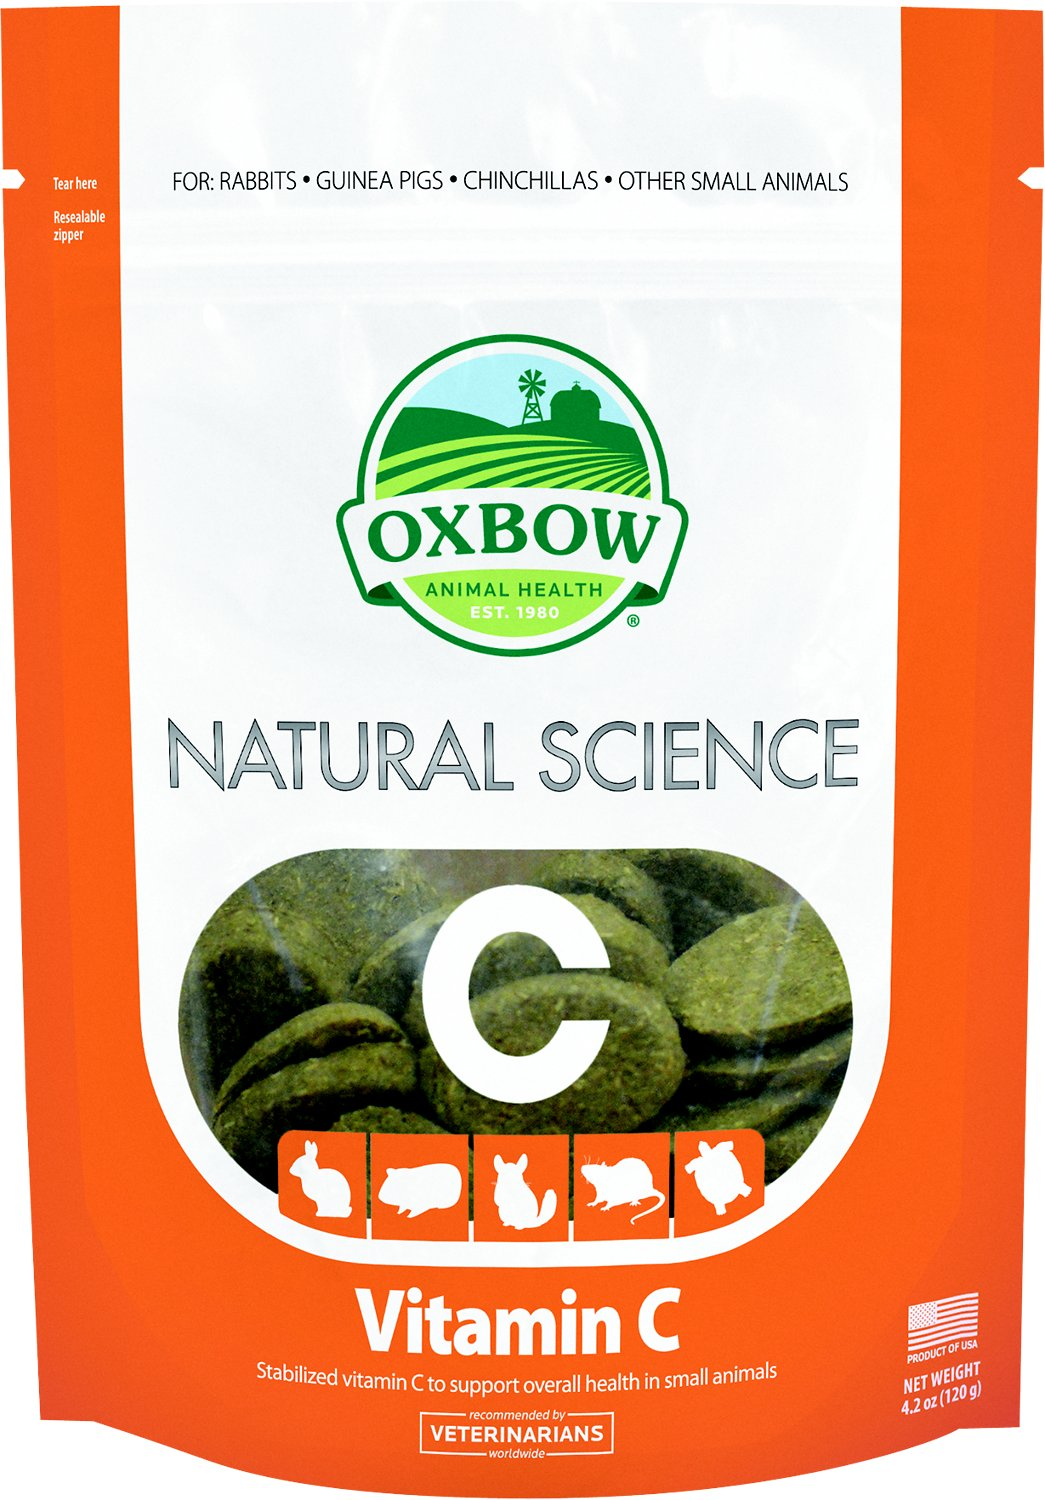 Oxbow Natural Science Vitamin C Small Animal Supplement, 60 count